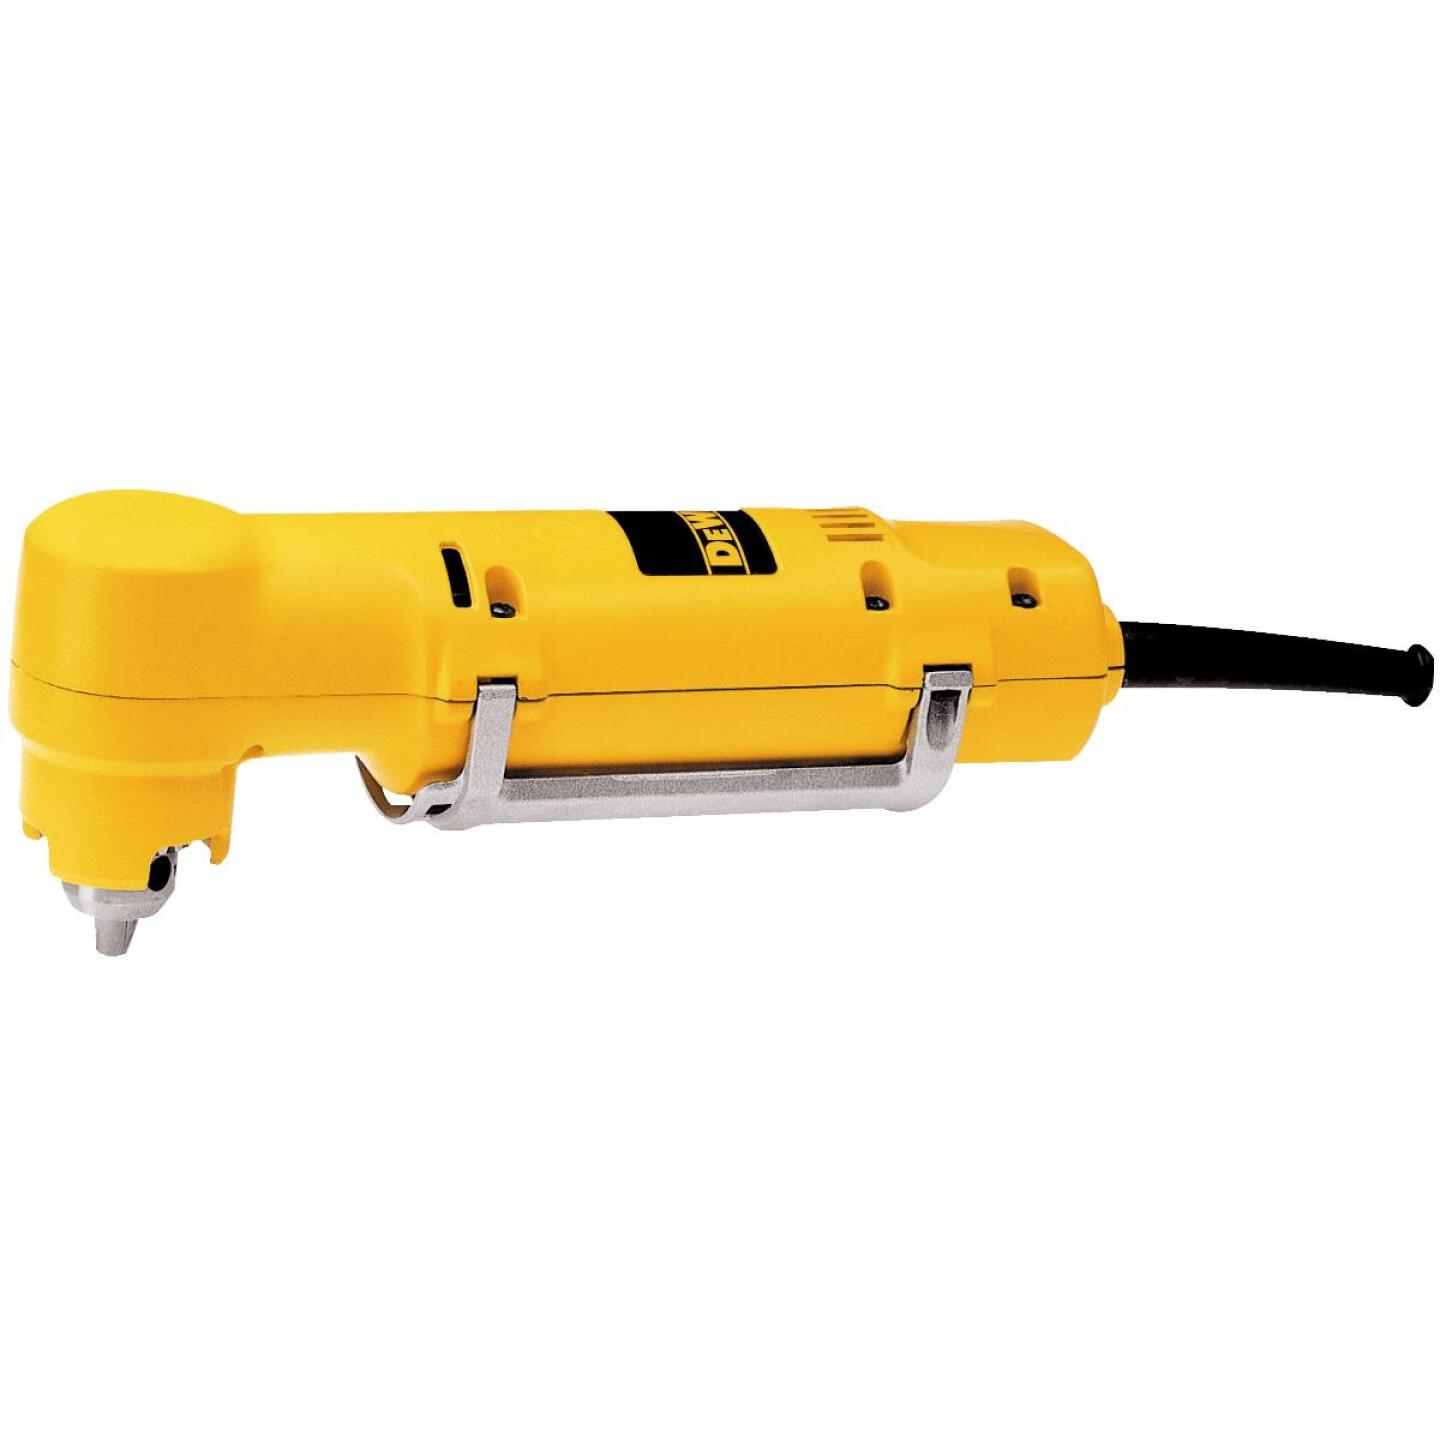 DeWalt 3/8 In. 3.2-Amp Keyed VSR Electric Angle Drill Image 1